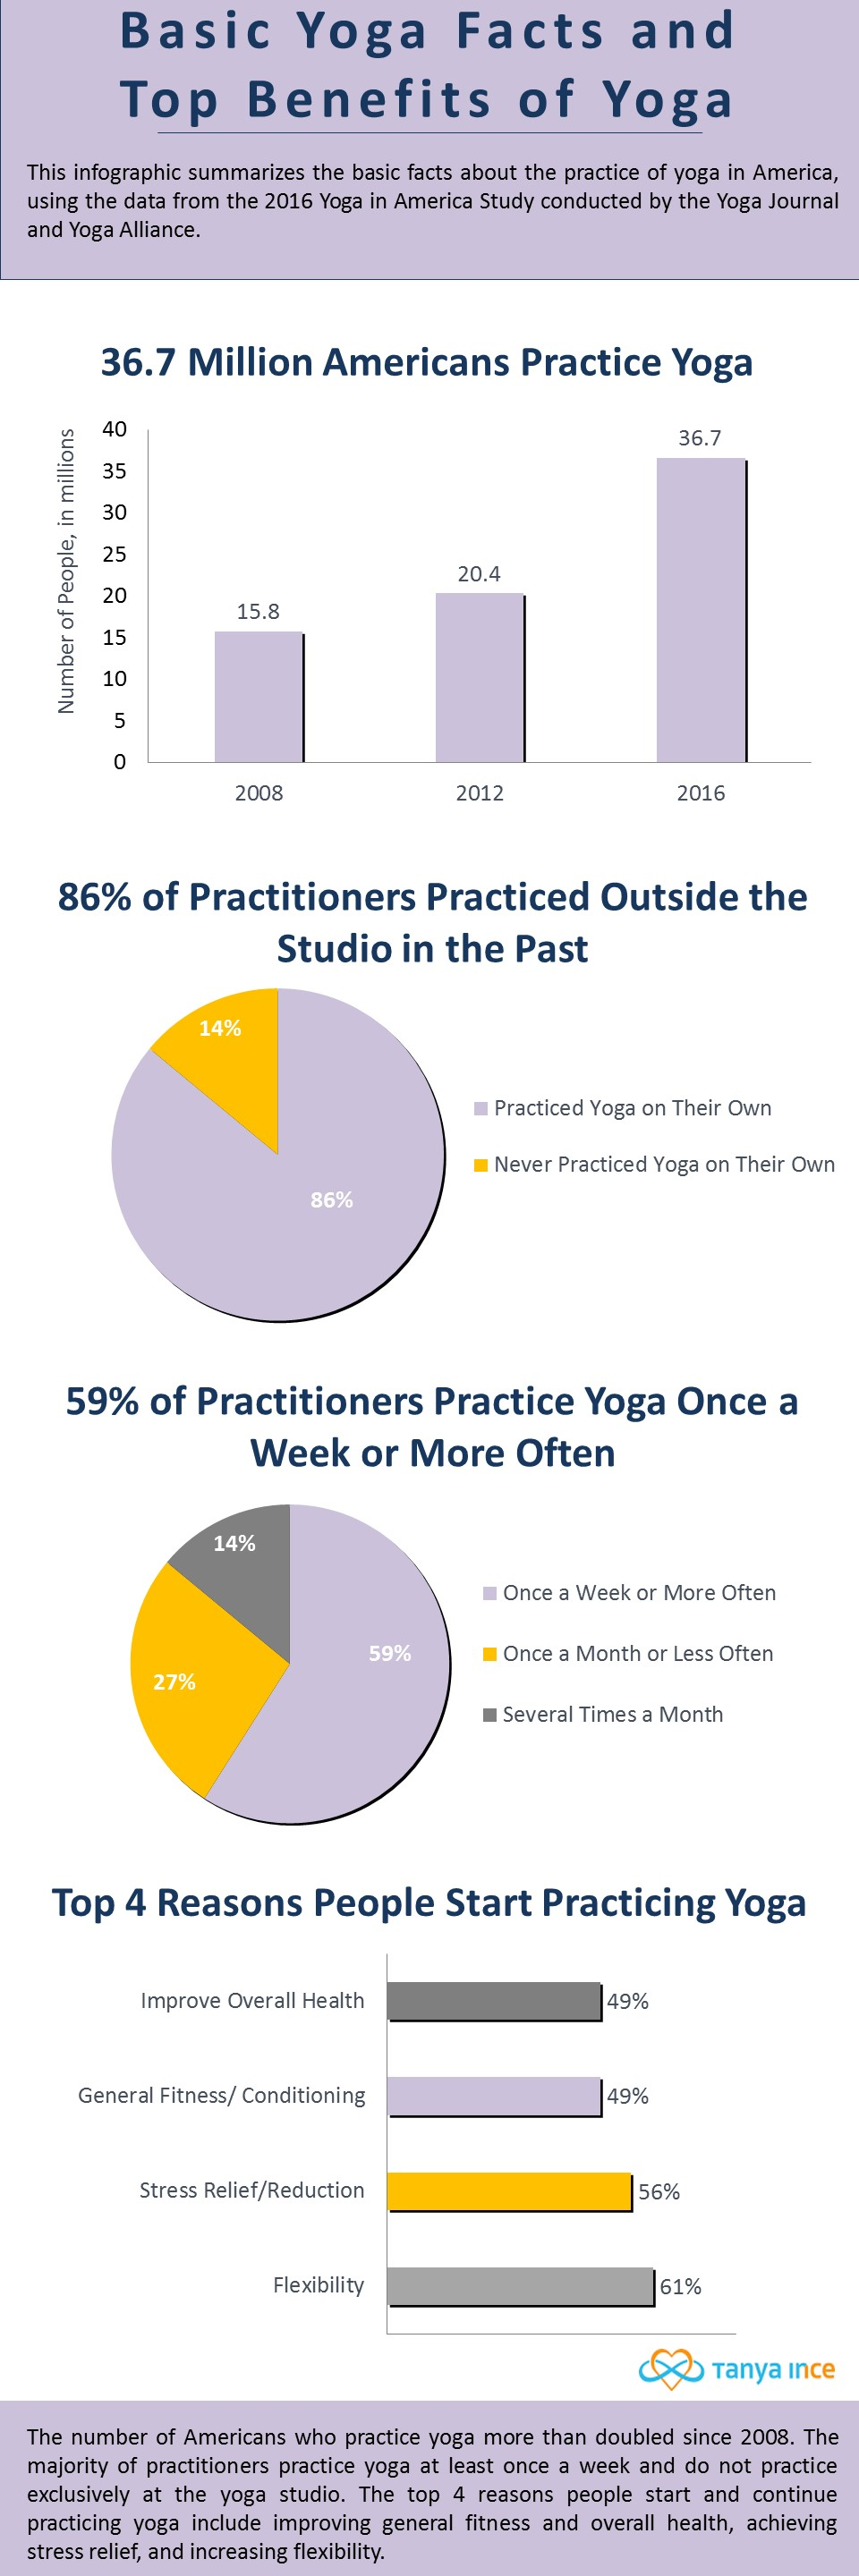 Basic Yoga Facts and Top Benefits of Yoga